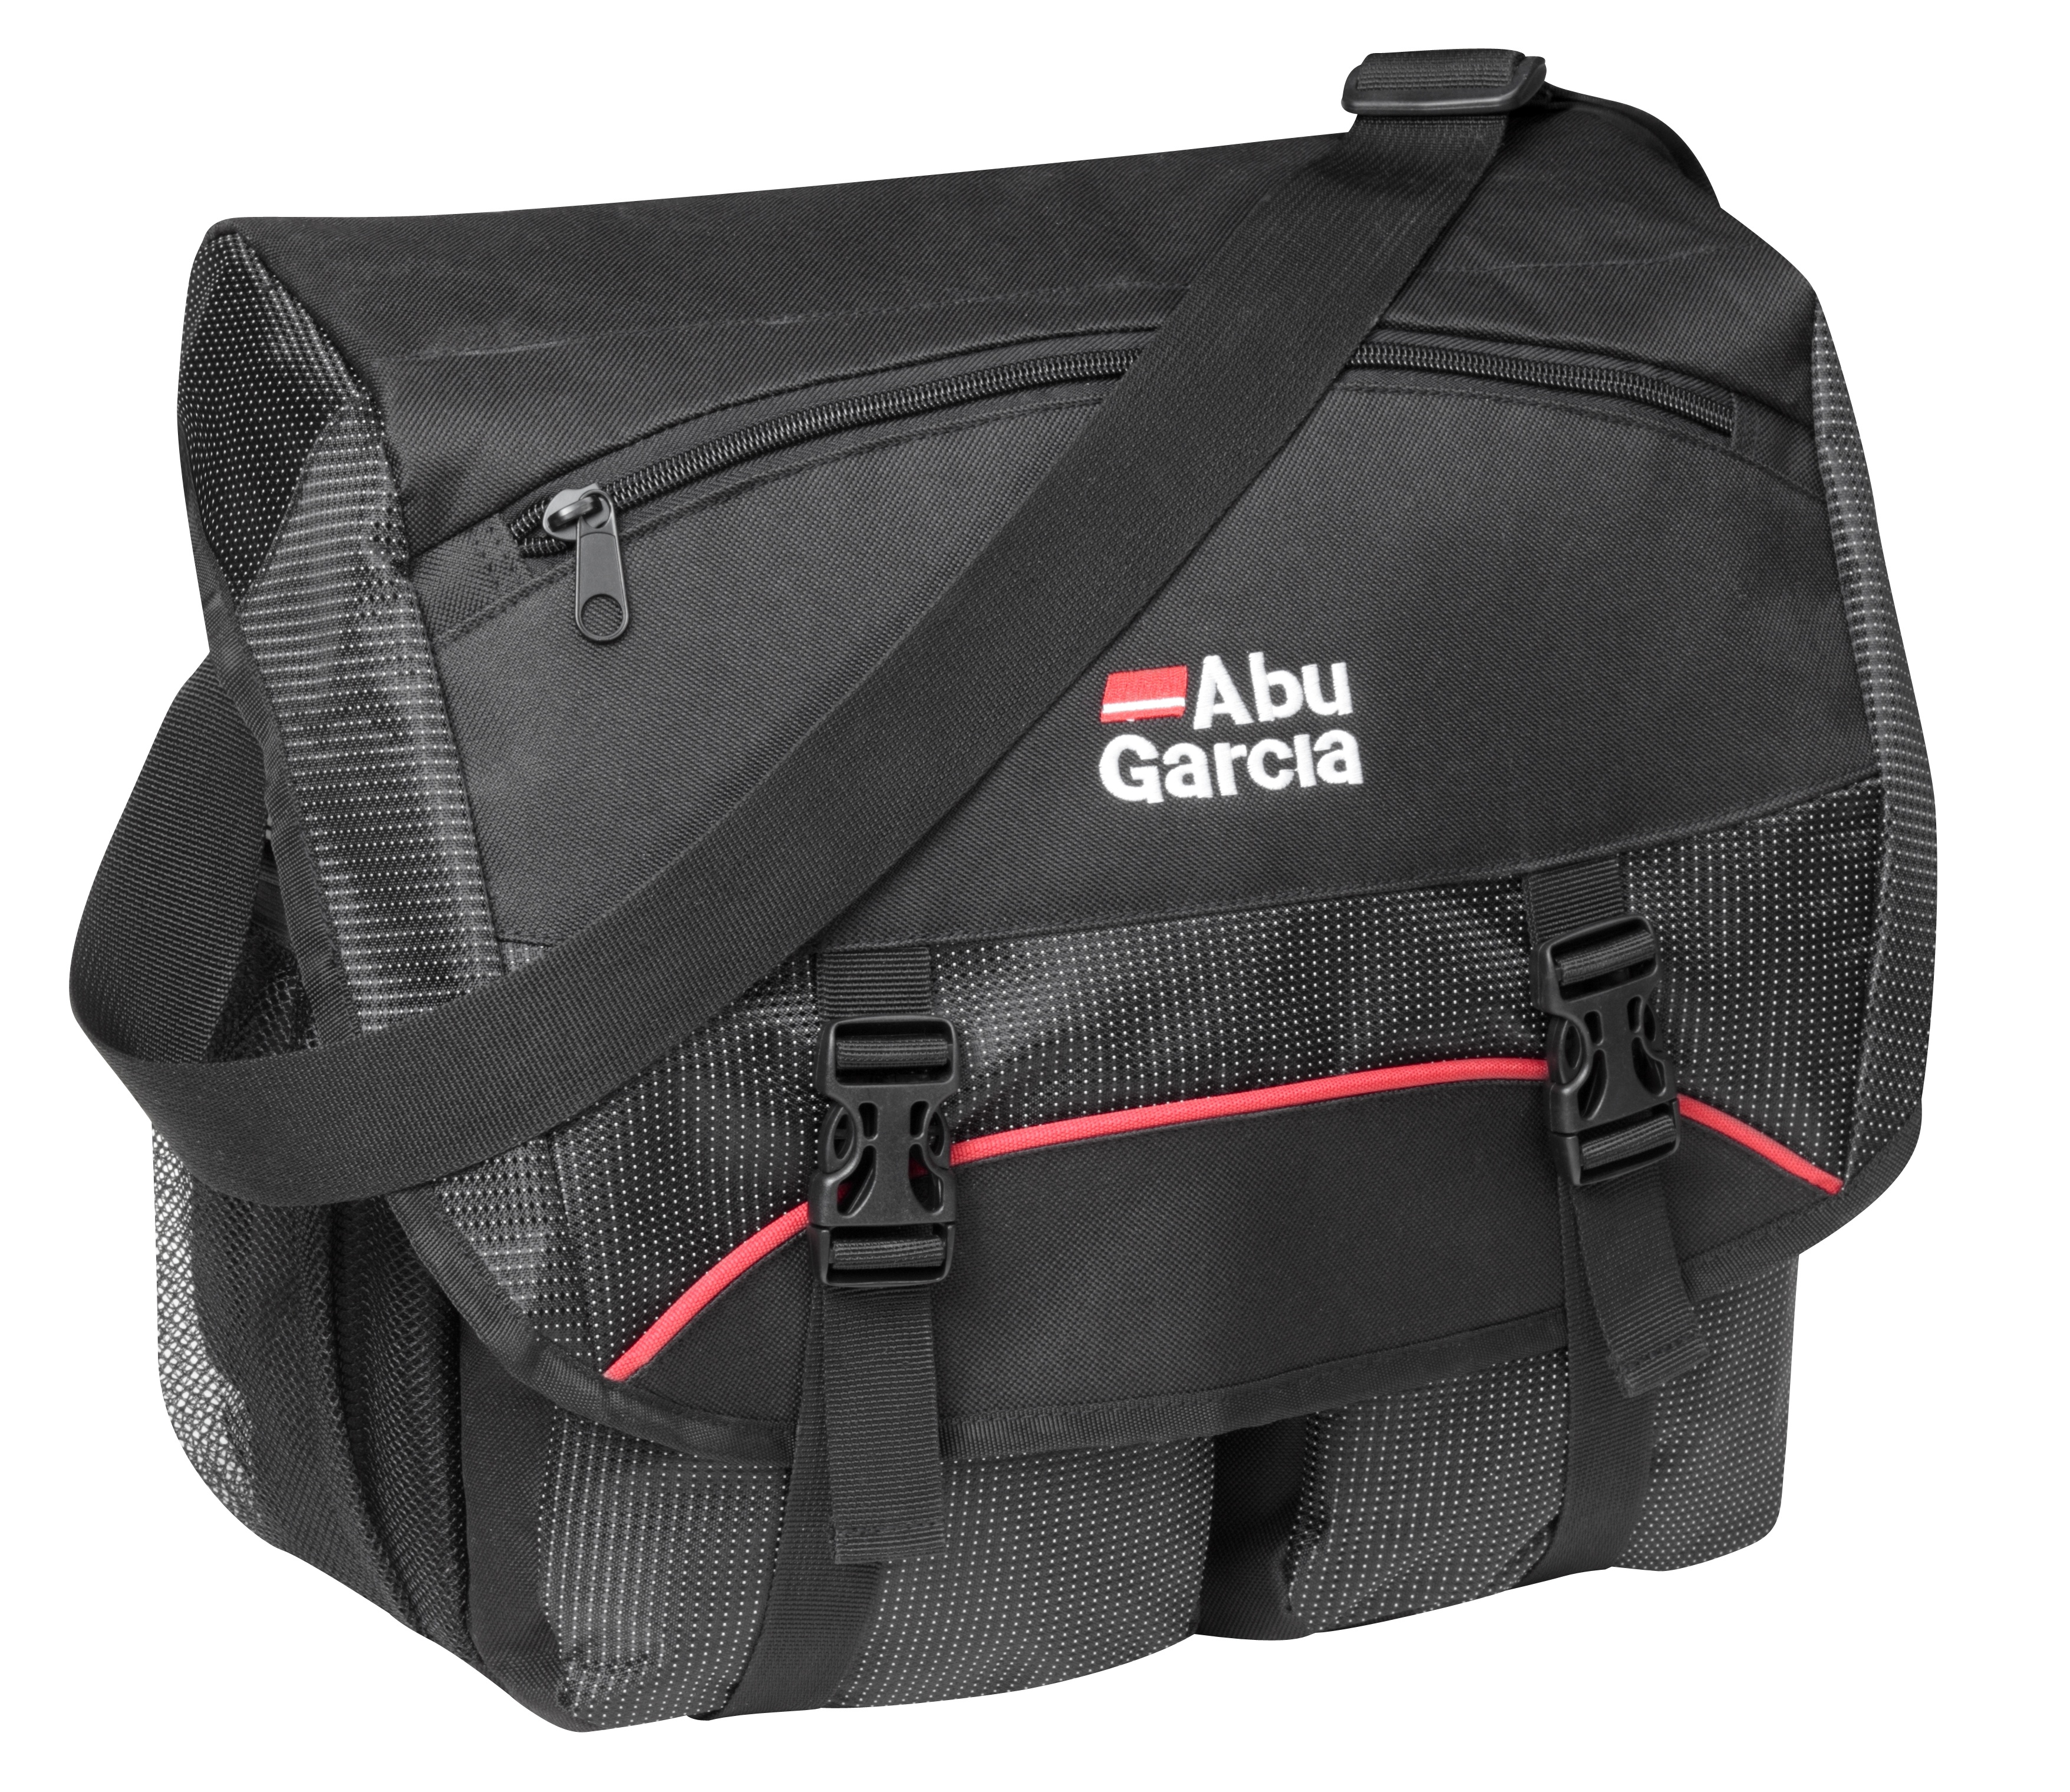 Abu Game Bag Premier